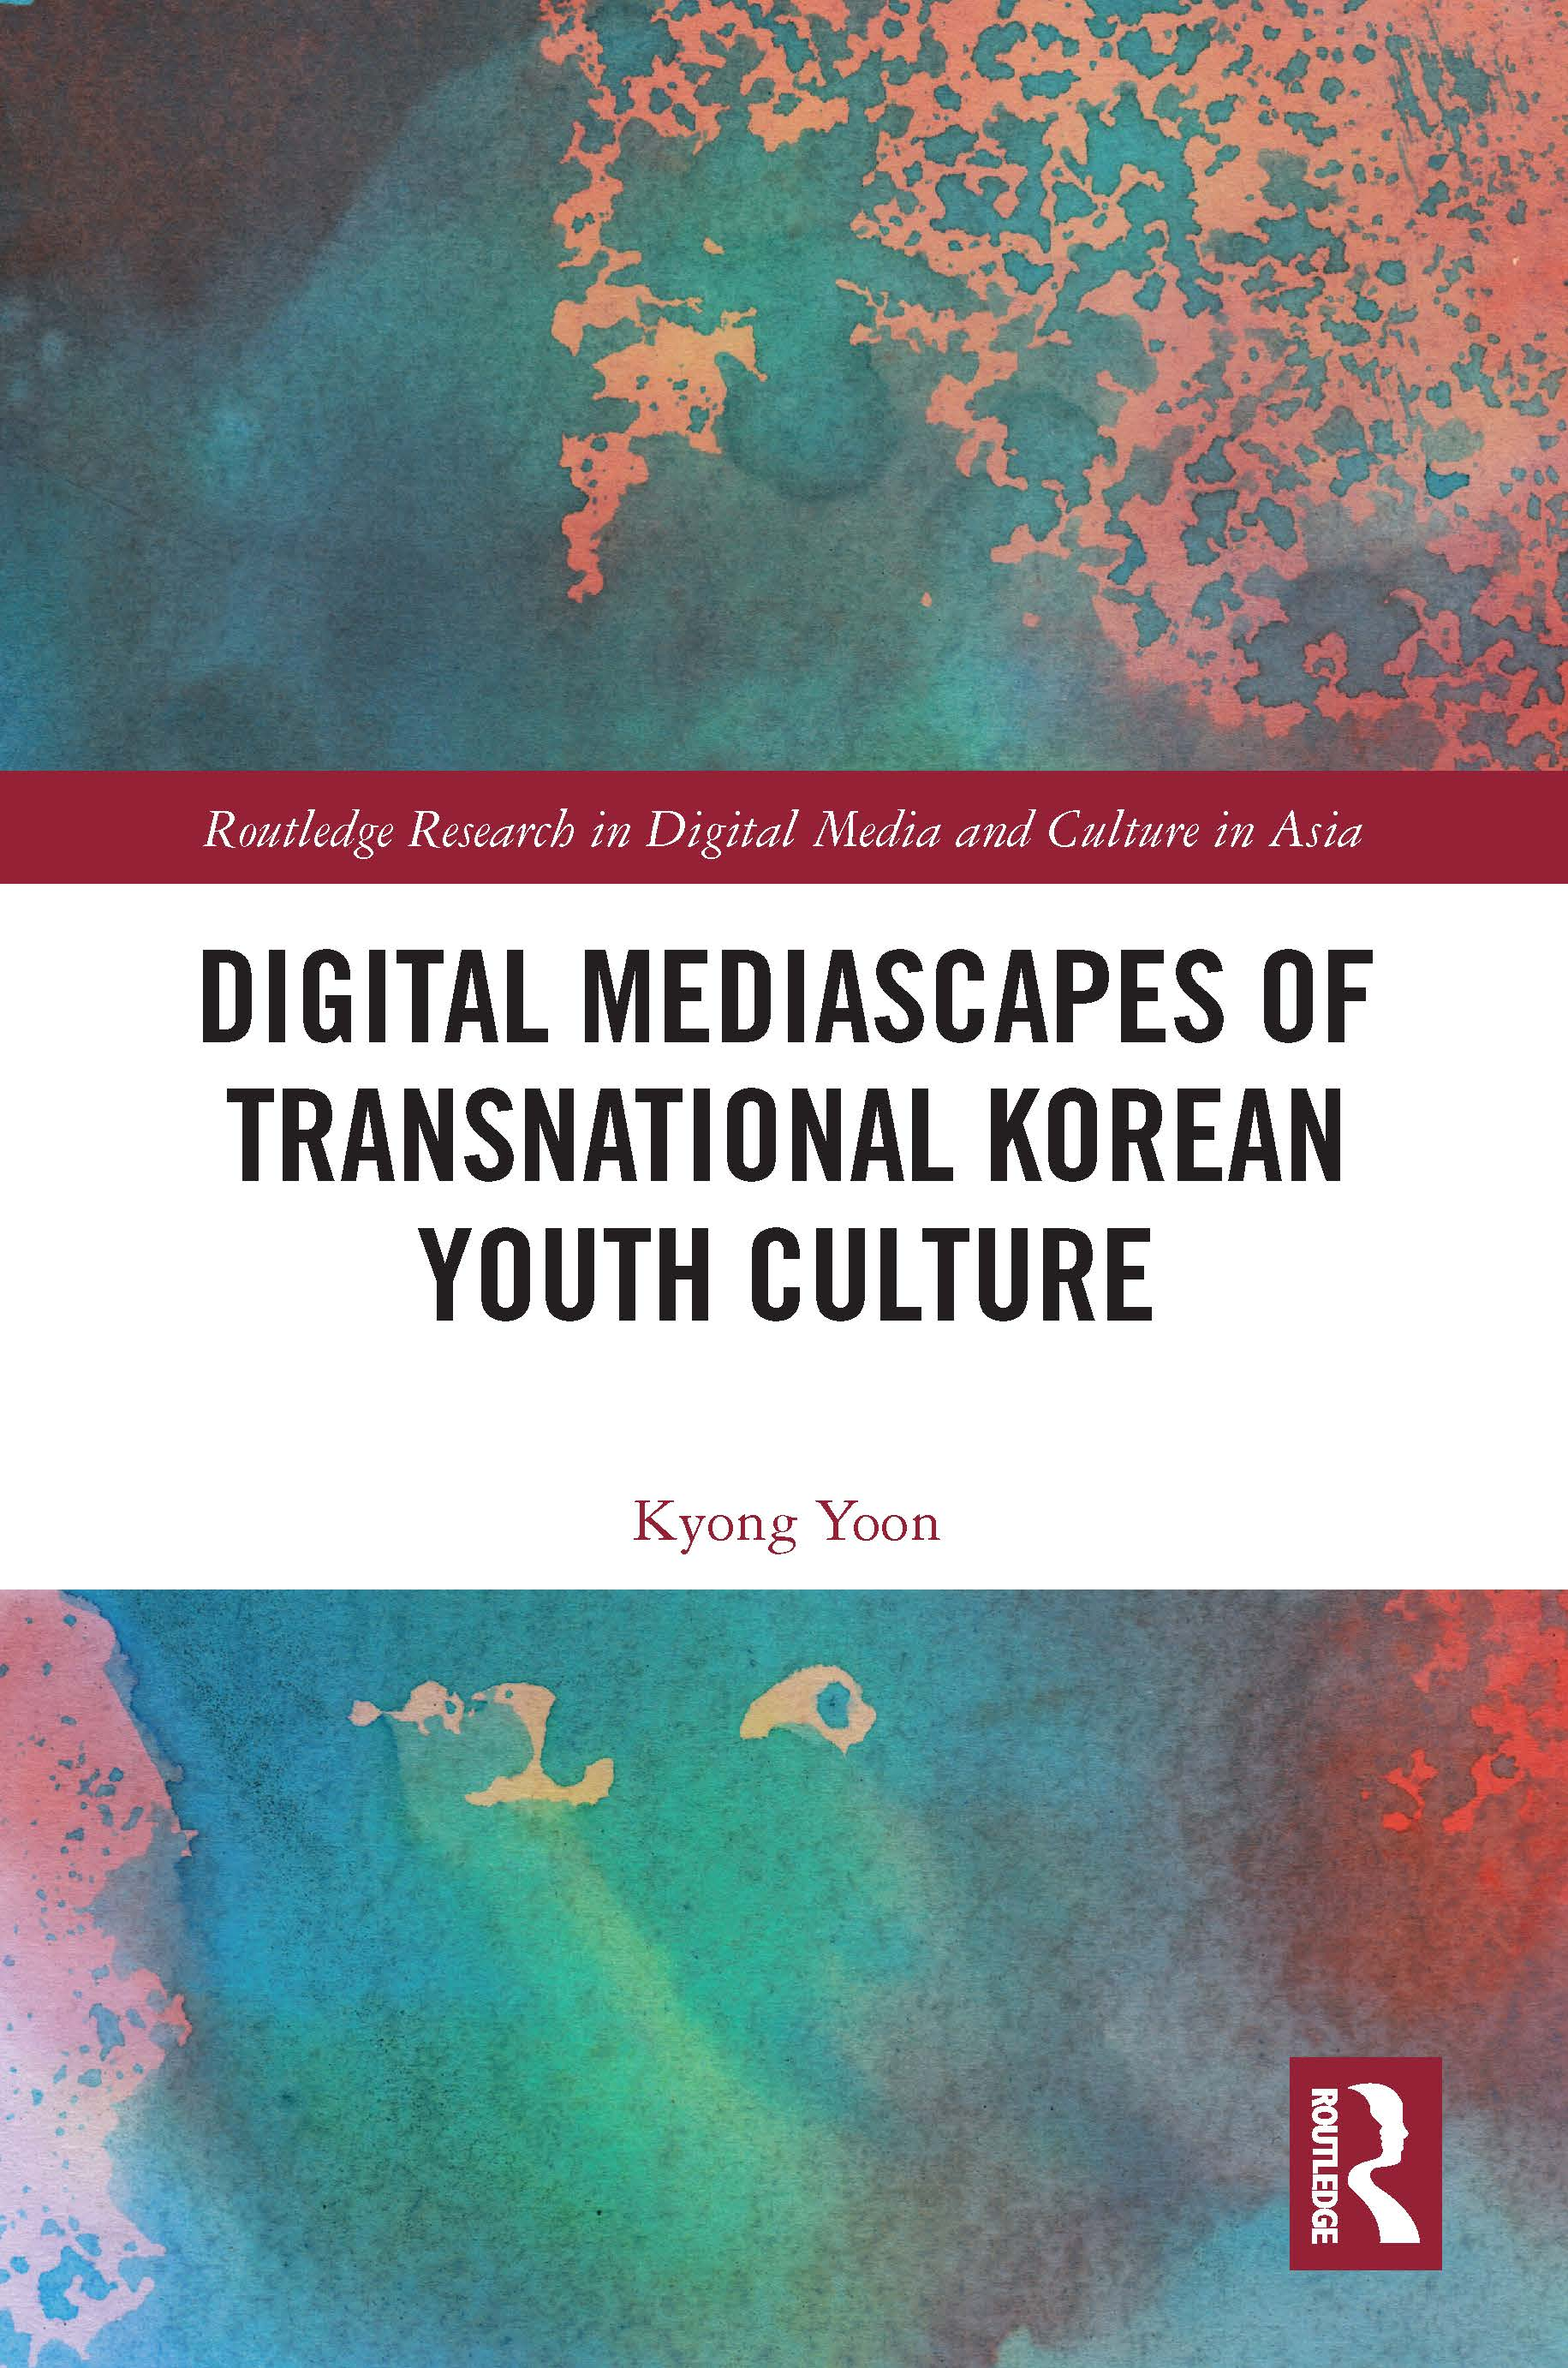 Digital Mediascapes of Transnational Korean Youth Culture book cover